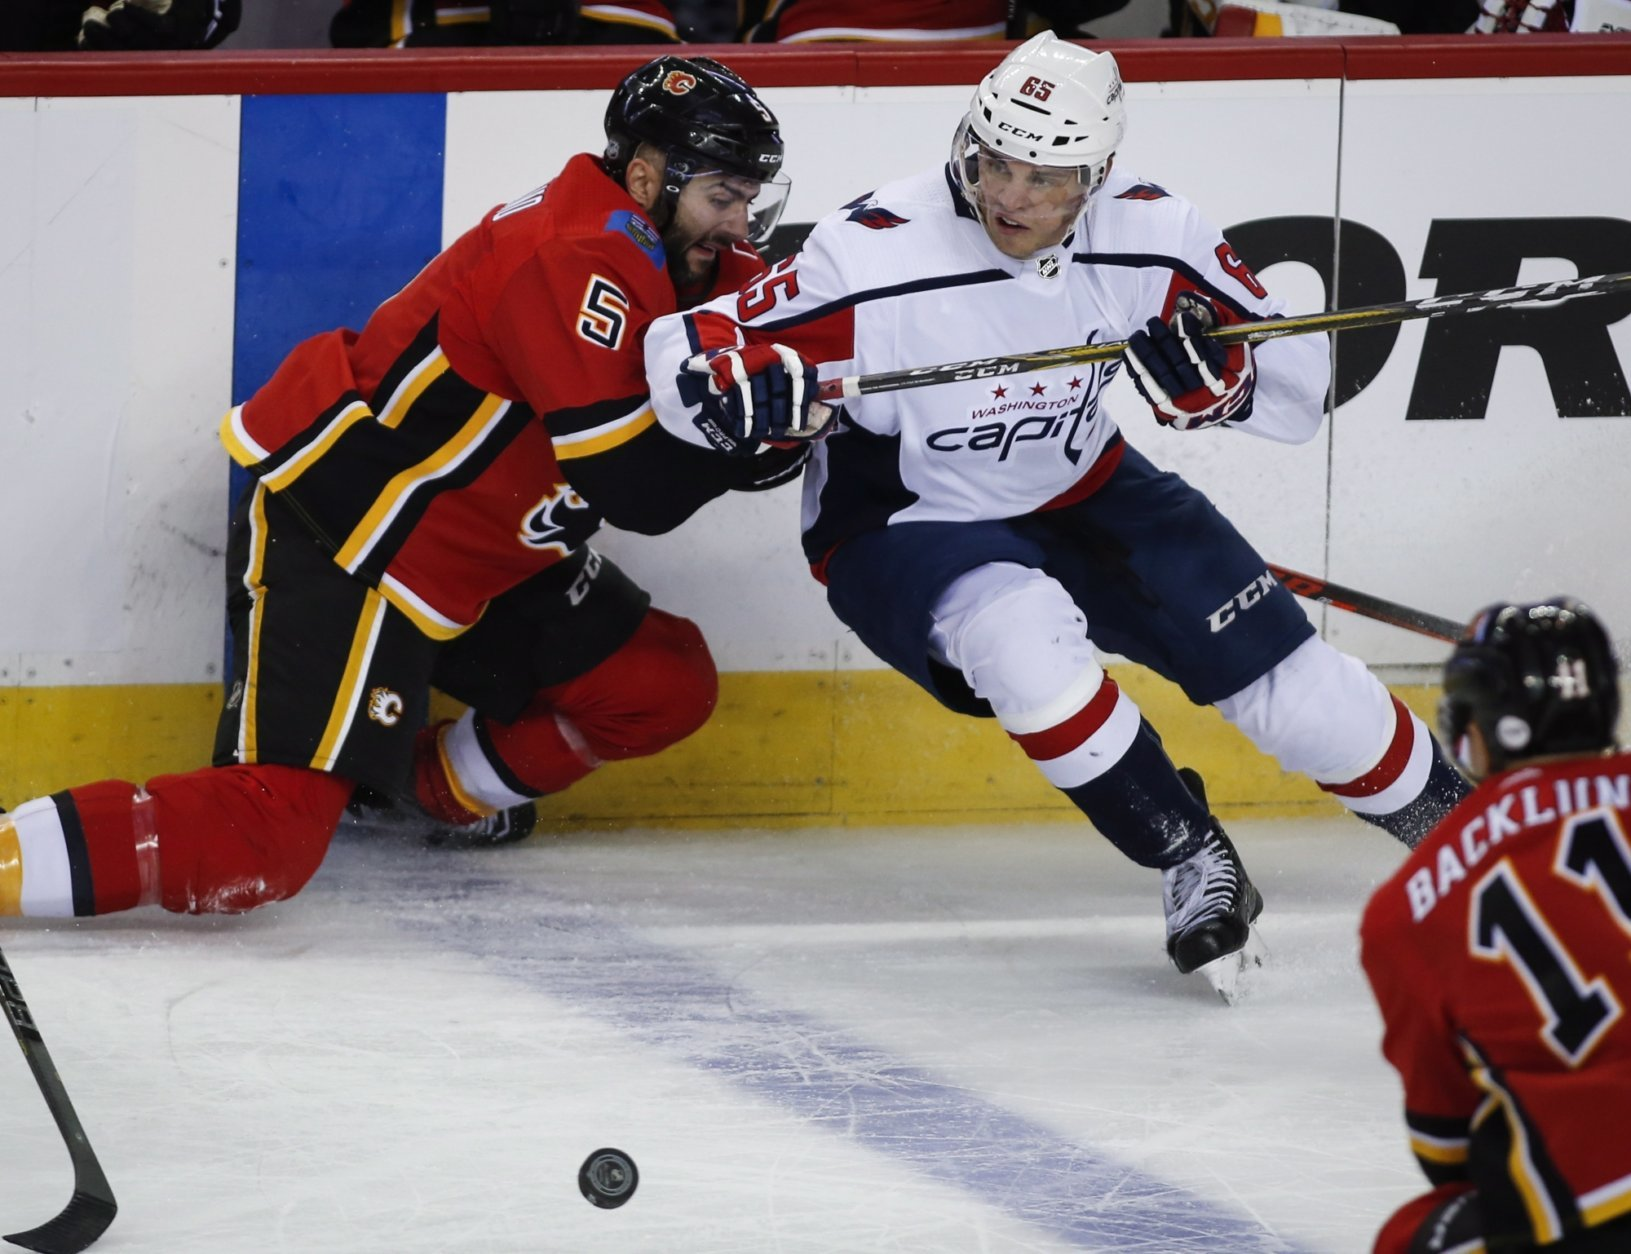 Washington Capitals' Andre Burakovsky, right, of Austria, gets past Calgary Flames' Mark Giordano during the first period of an NHL hockey game in Calgary, Alberta Saturday, Oct. 27, 2018. (Jeff McIntosh/The Canadian Press via AP)